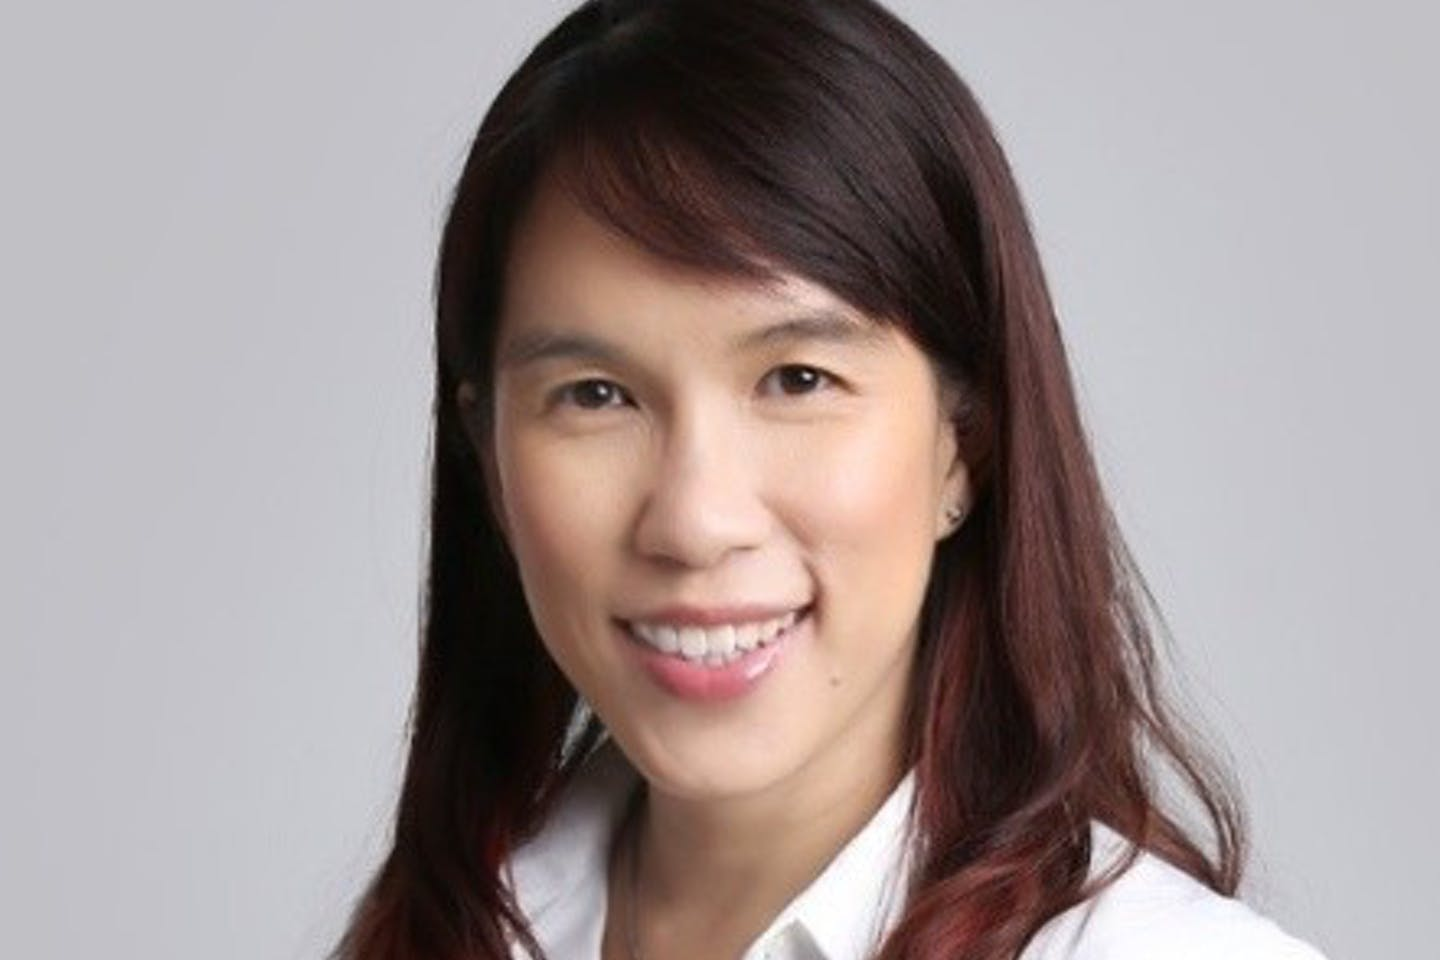 Lim brings to an end a long tenure with Microsoft, where latterly she was senior manager, global diversity and inclusion, Asia practice leader.